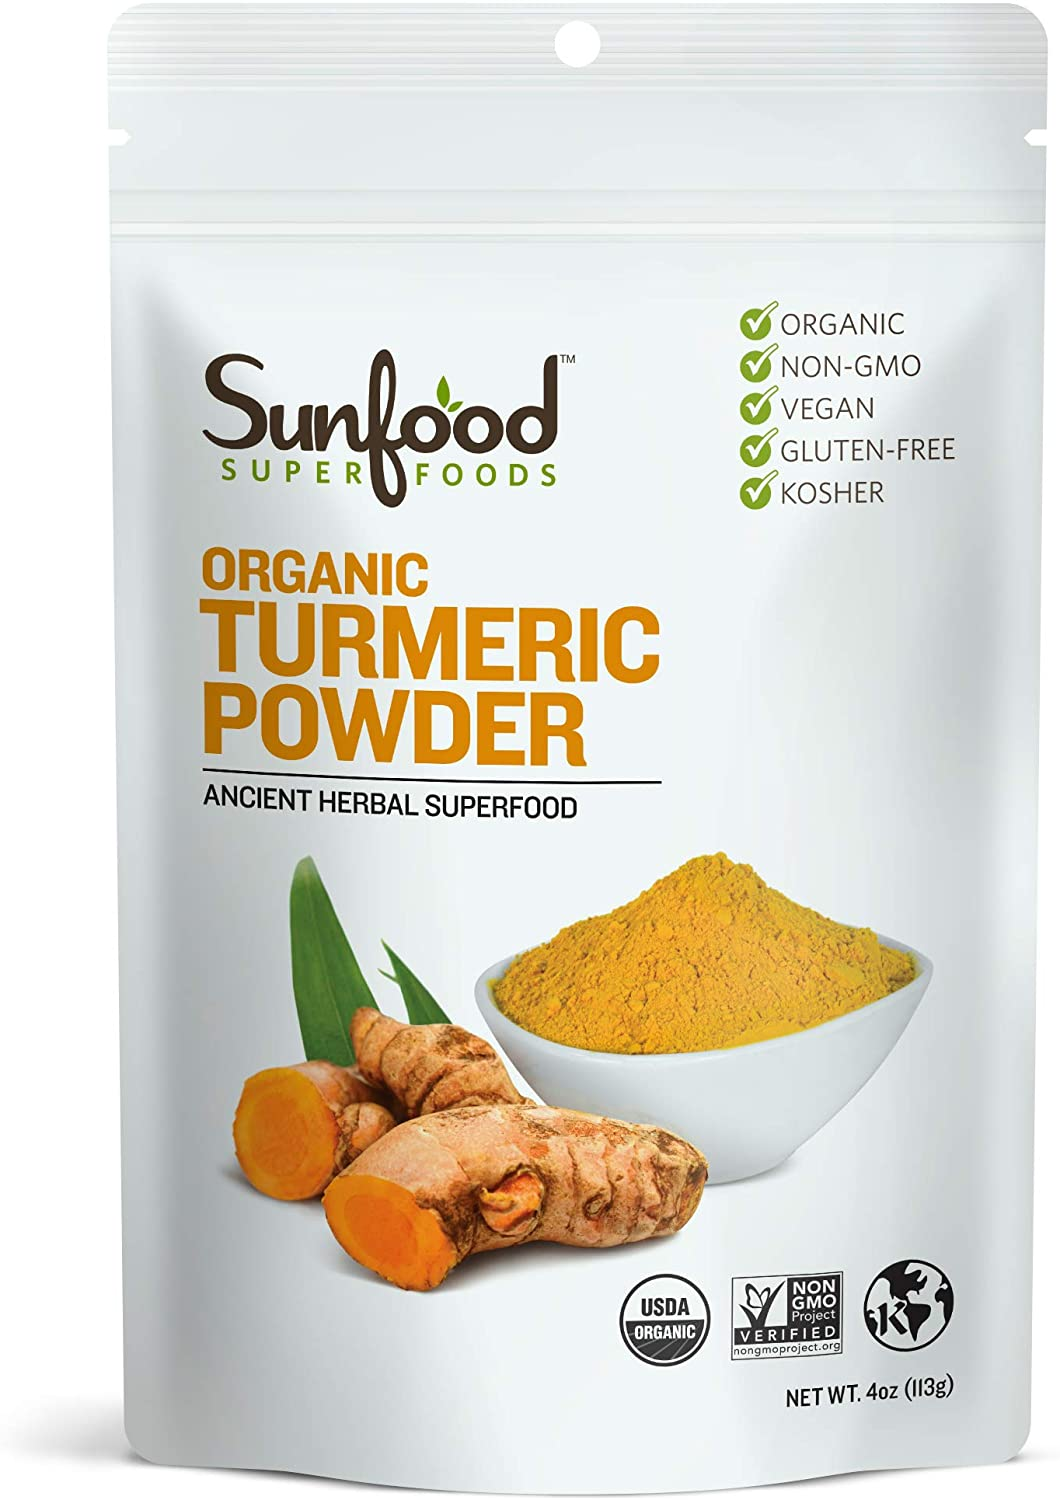 Sunfood Superfoods Organic Turmeric Root Powder - 100% Pure Medicinal Herb with Curcumin - 4 oz Bag